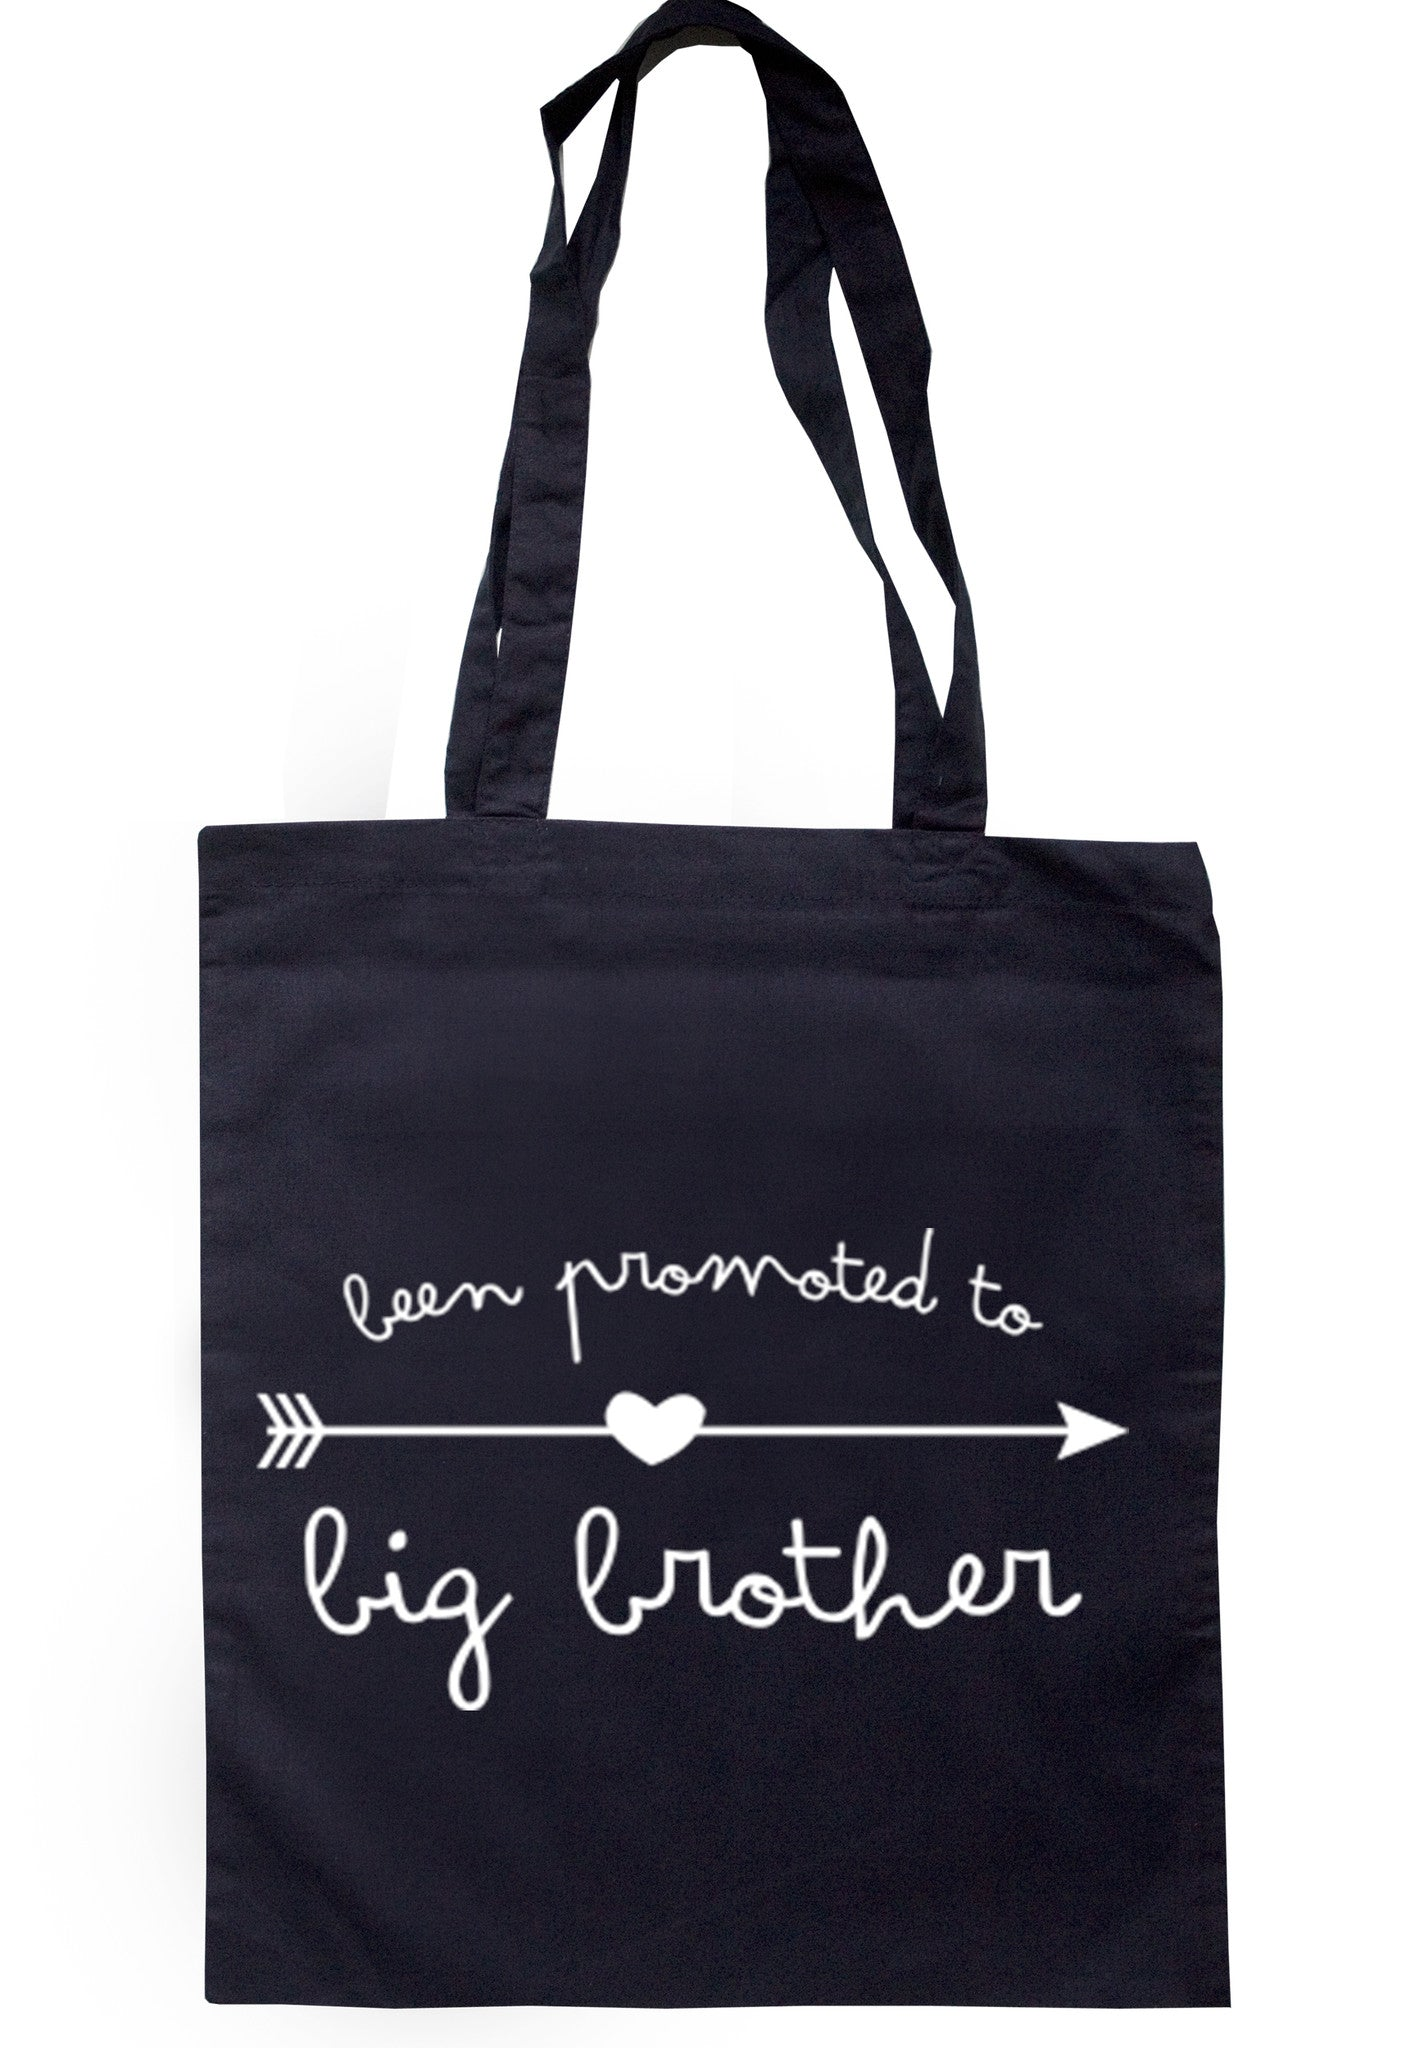 Been Promoted To Big Brother Tote Bag TB0025 - Illustrated Identity Ltd.